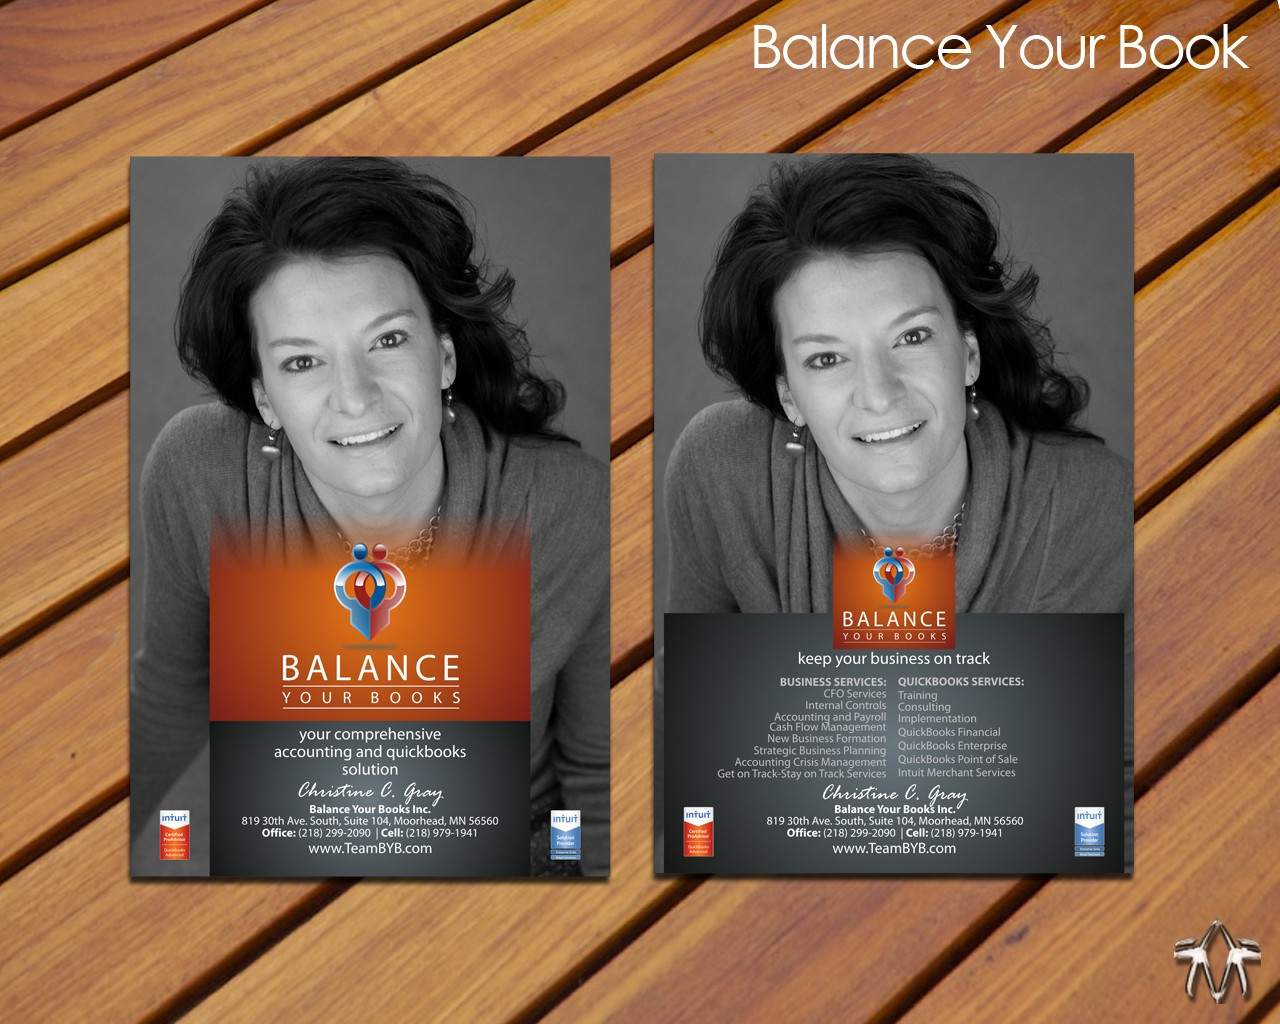 Create the next stationery for Balance Your Books Inc.